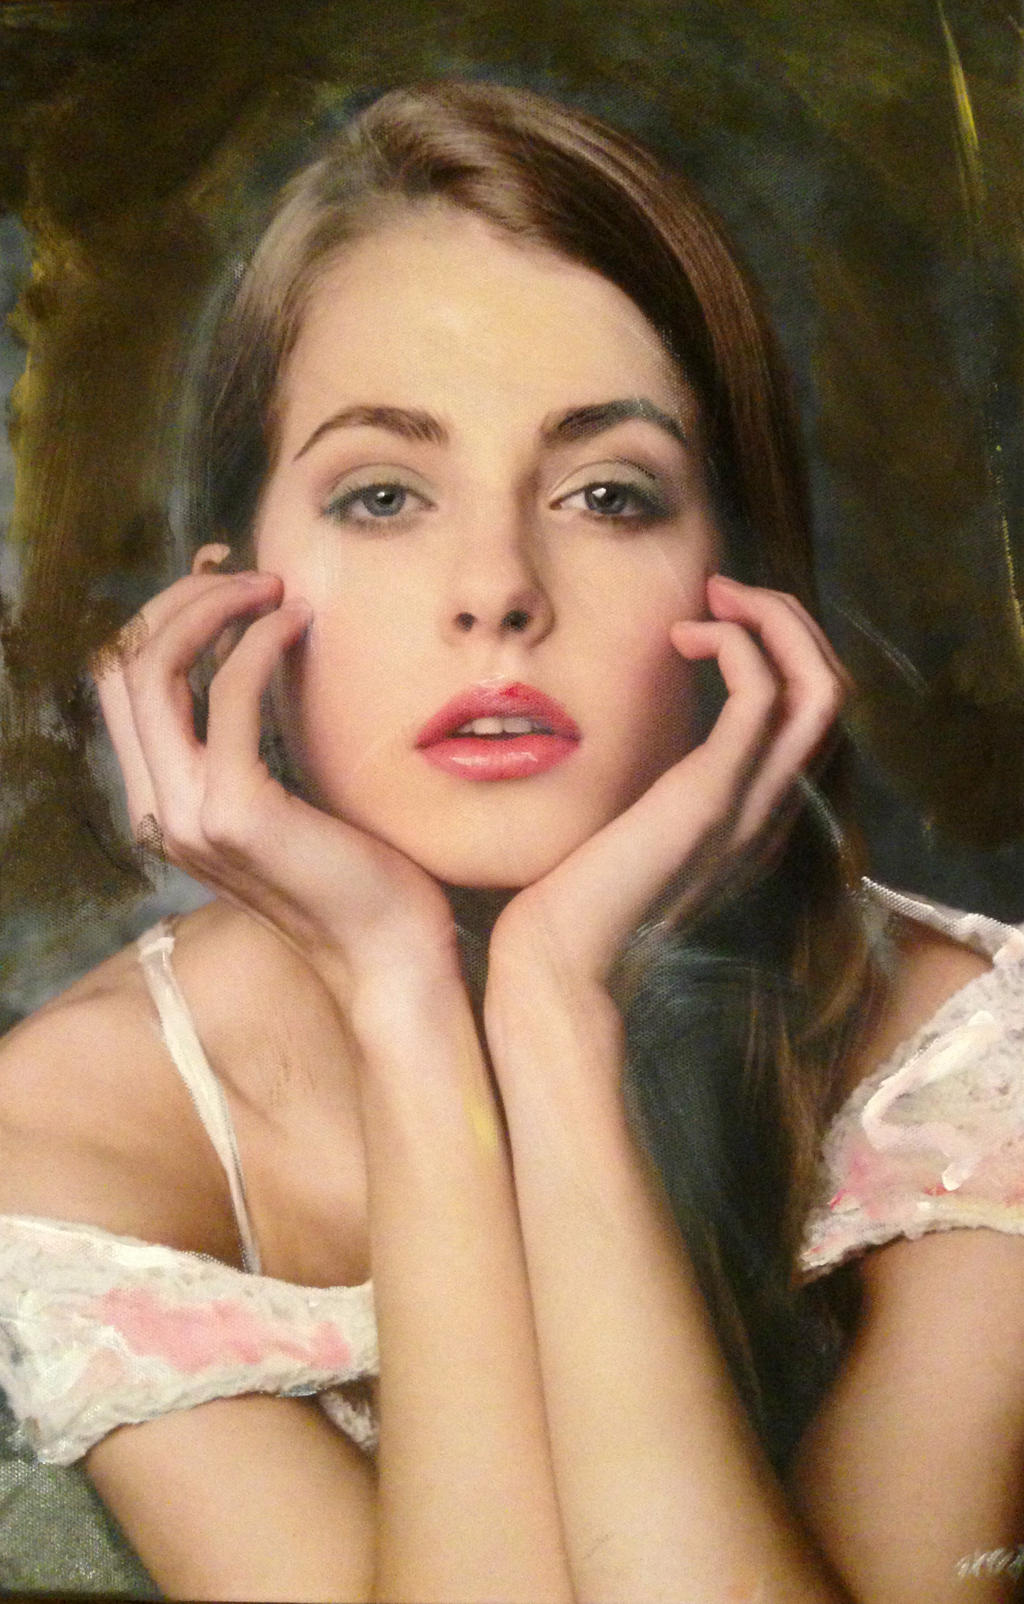 Thoughtfulness by William-Oxer